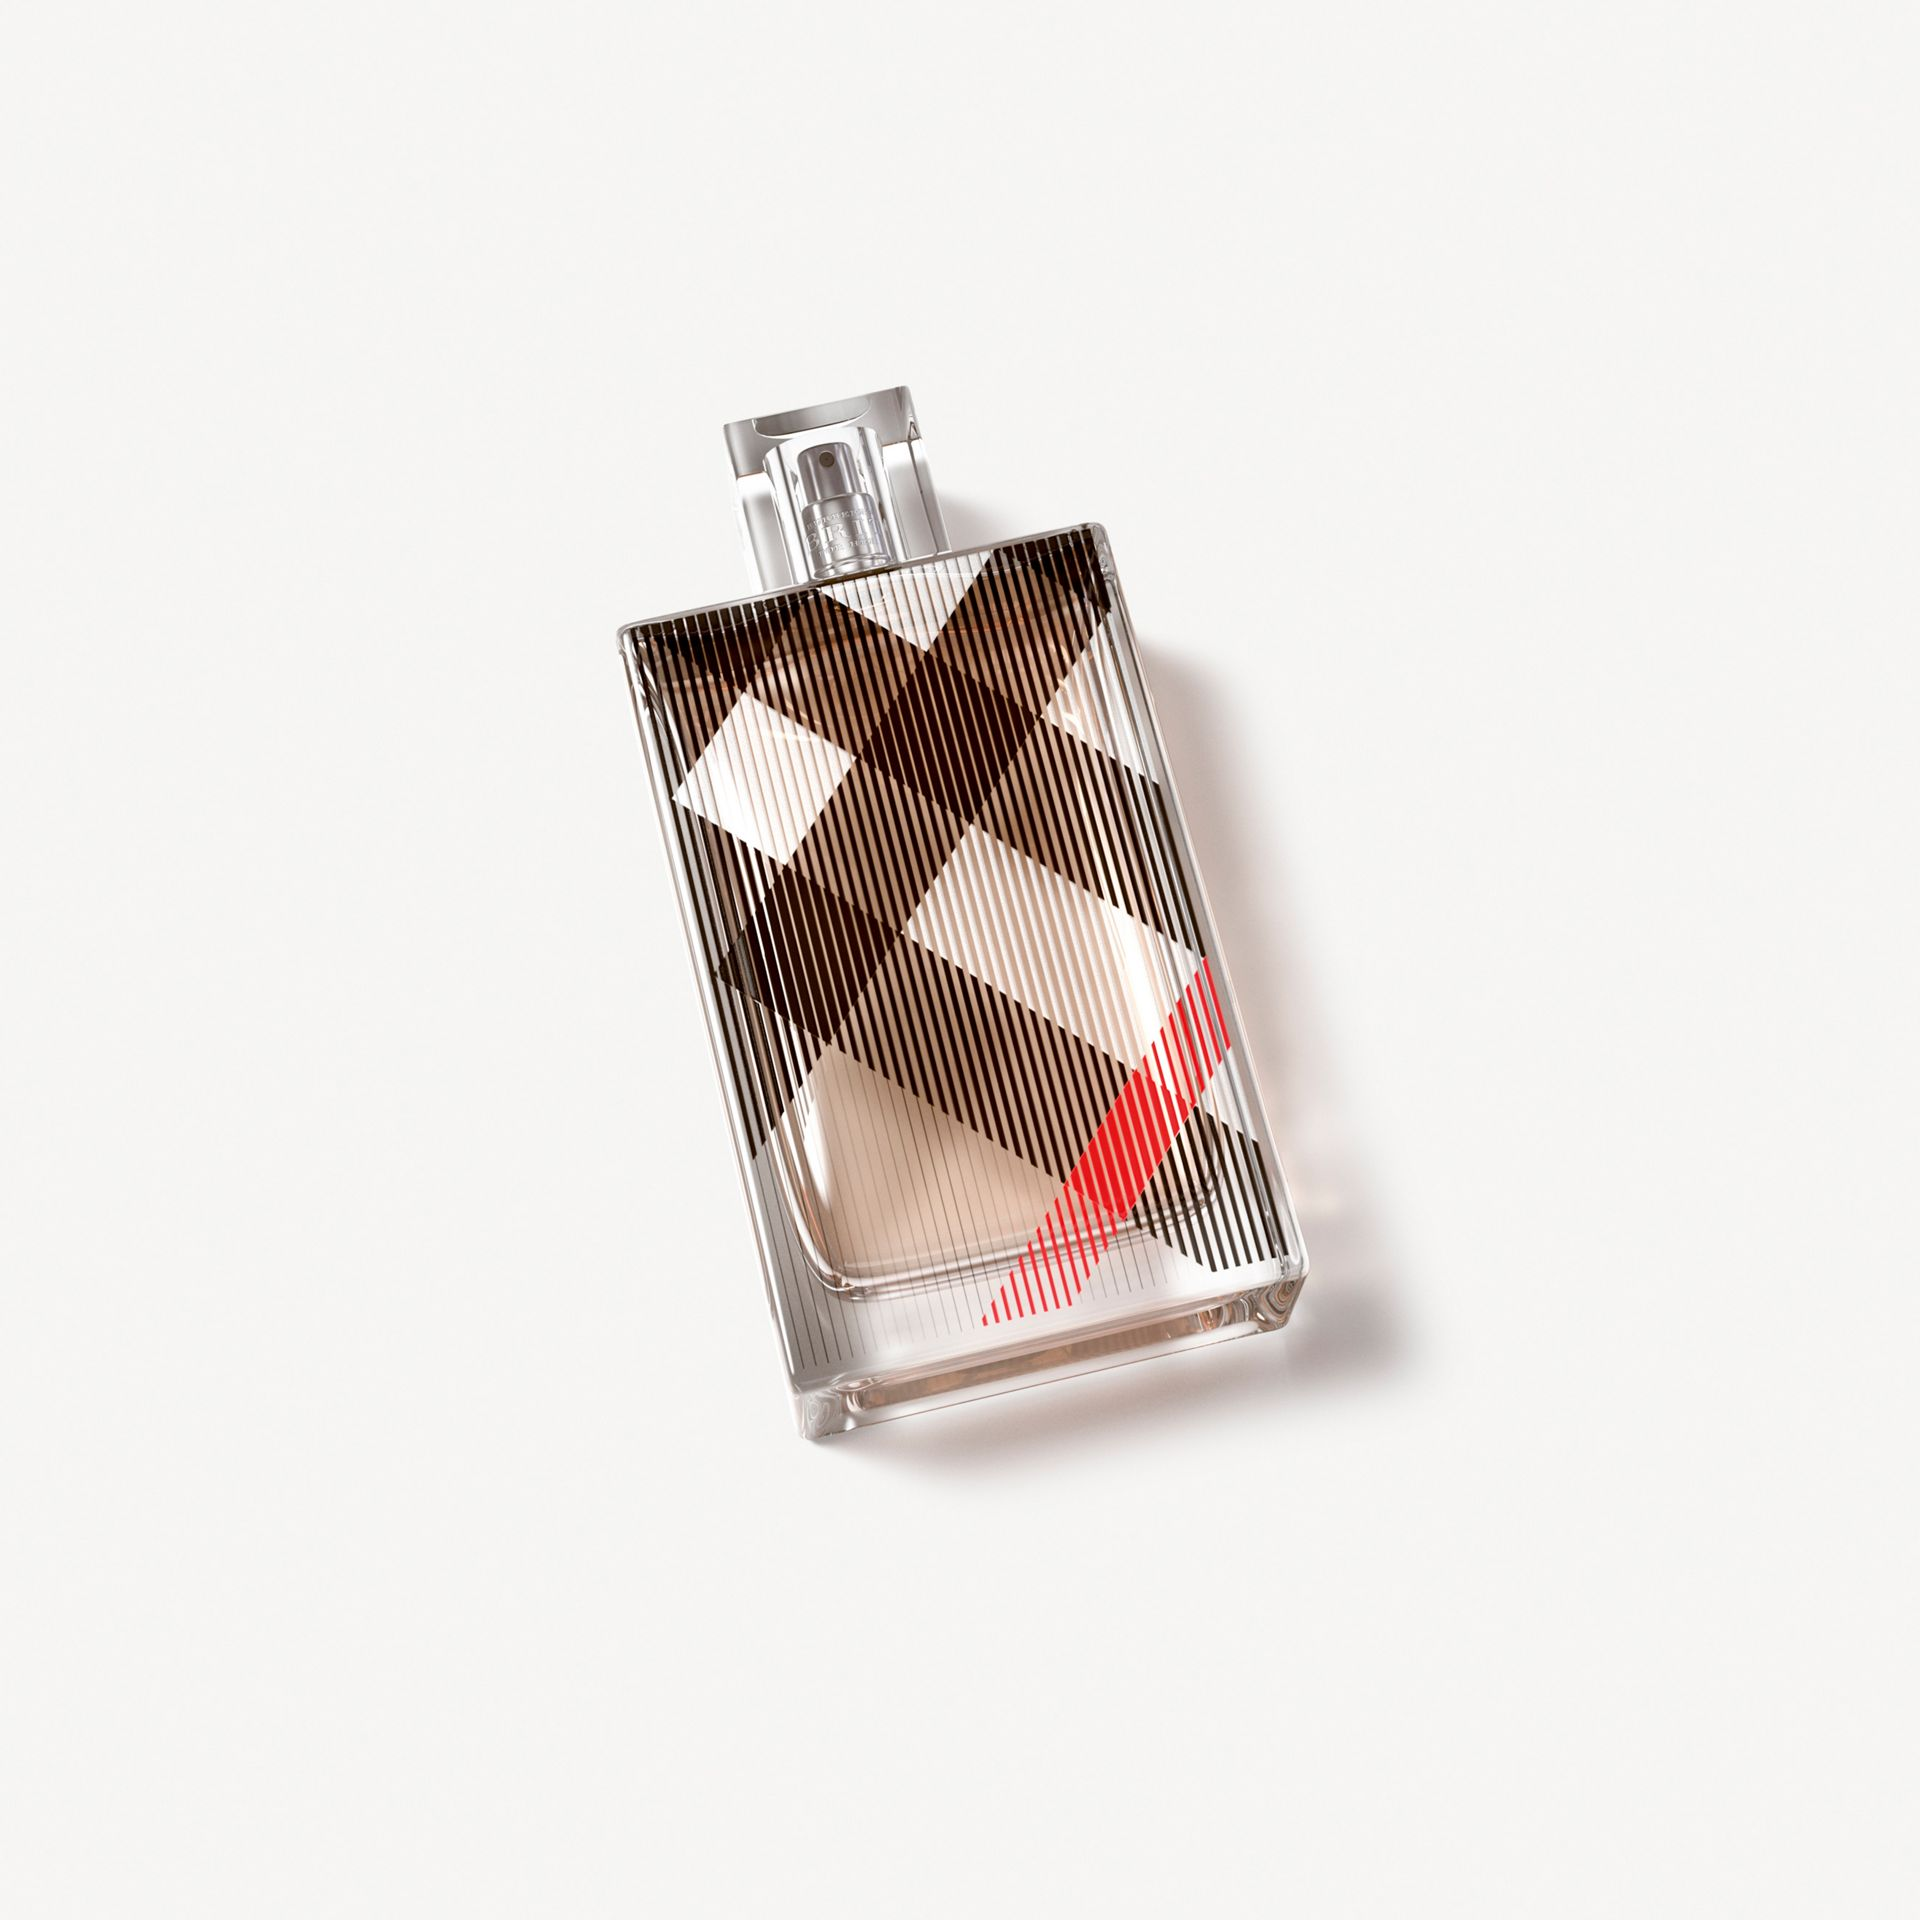 Eau de Parfum Burberry Brit for Her 100 ml - Femme | Burberry - photo de la galerie 1